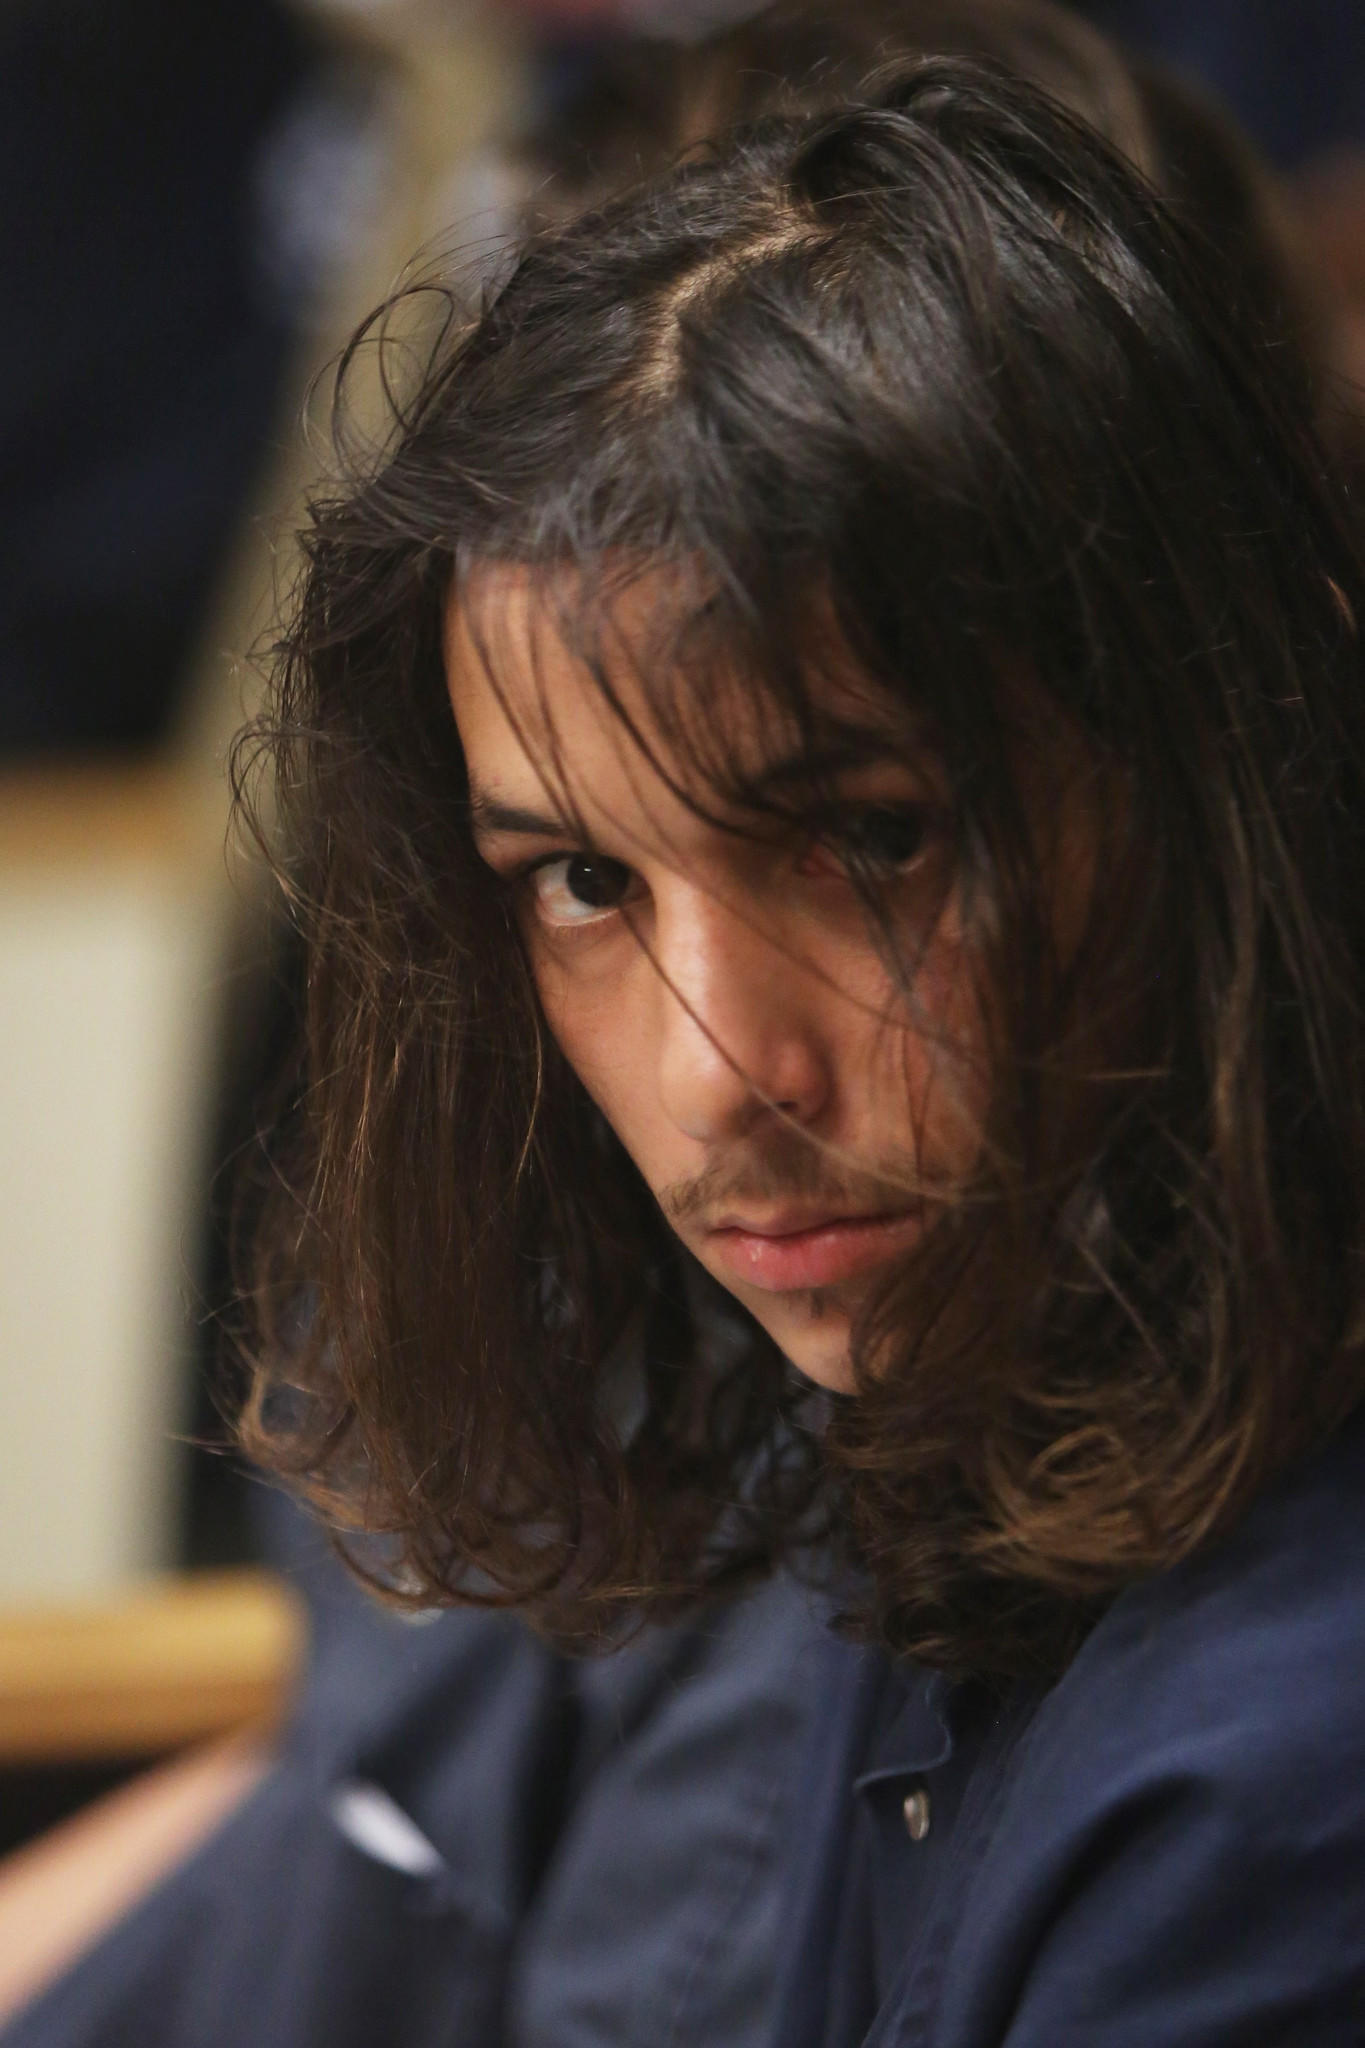 Christopher Rodriguez, 19, waits for his first appearance on charges of first-degree premeditated murder at the the John E. Polk Correctional Facility in Seminole county, on Tuesday, January 21, 2014.